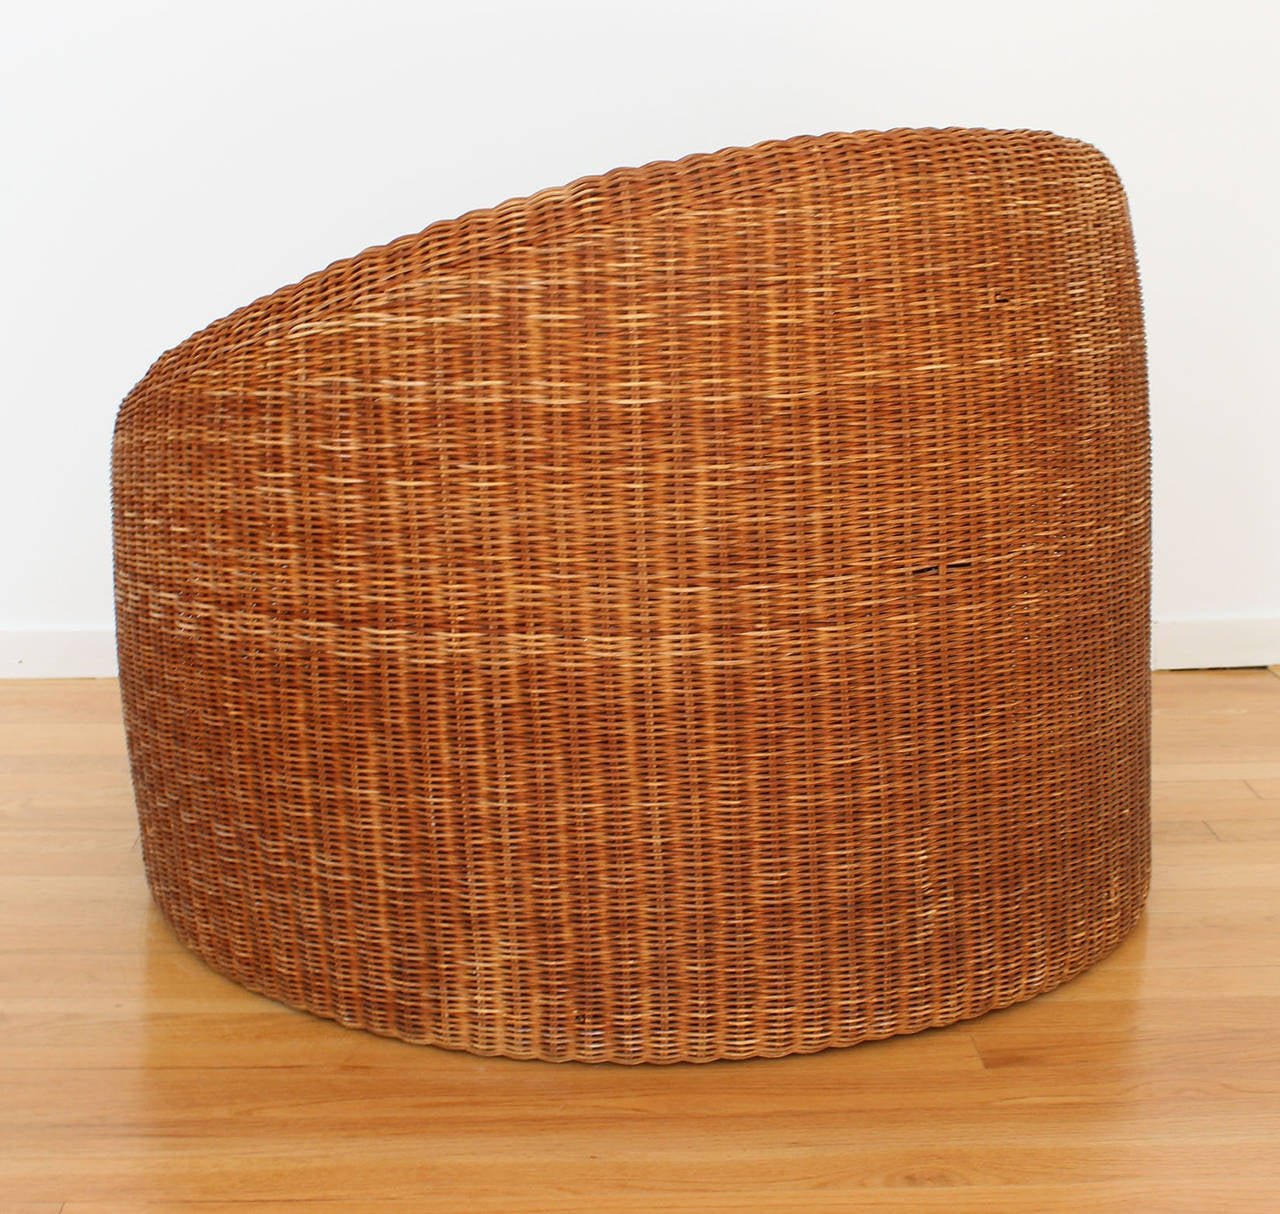 Eero Aarnio Rattan Chair In Good Condition For Sale In Southampton, NY